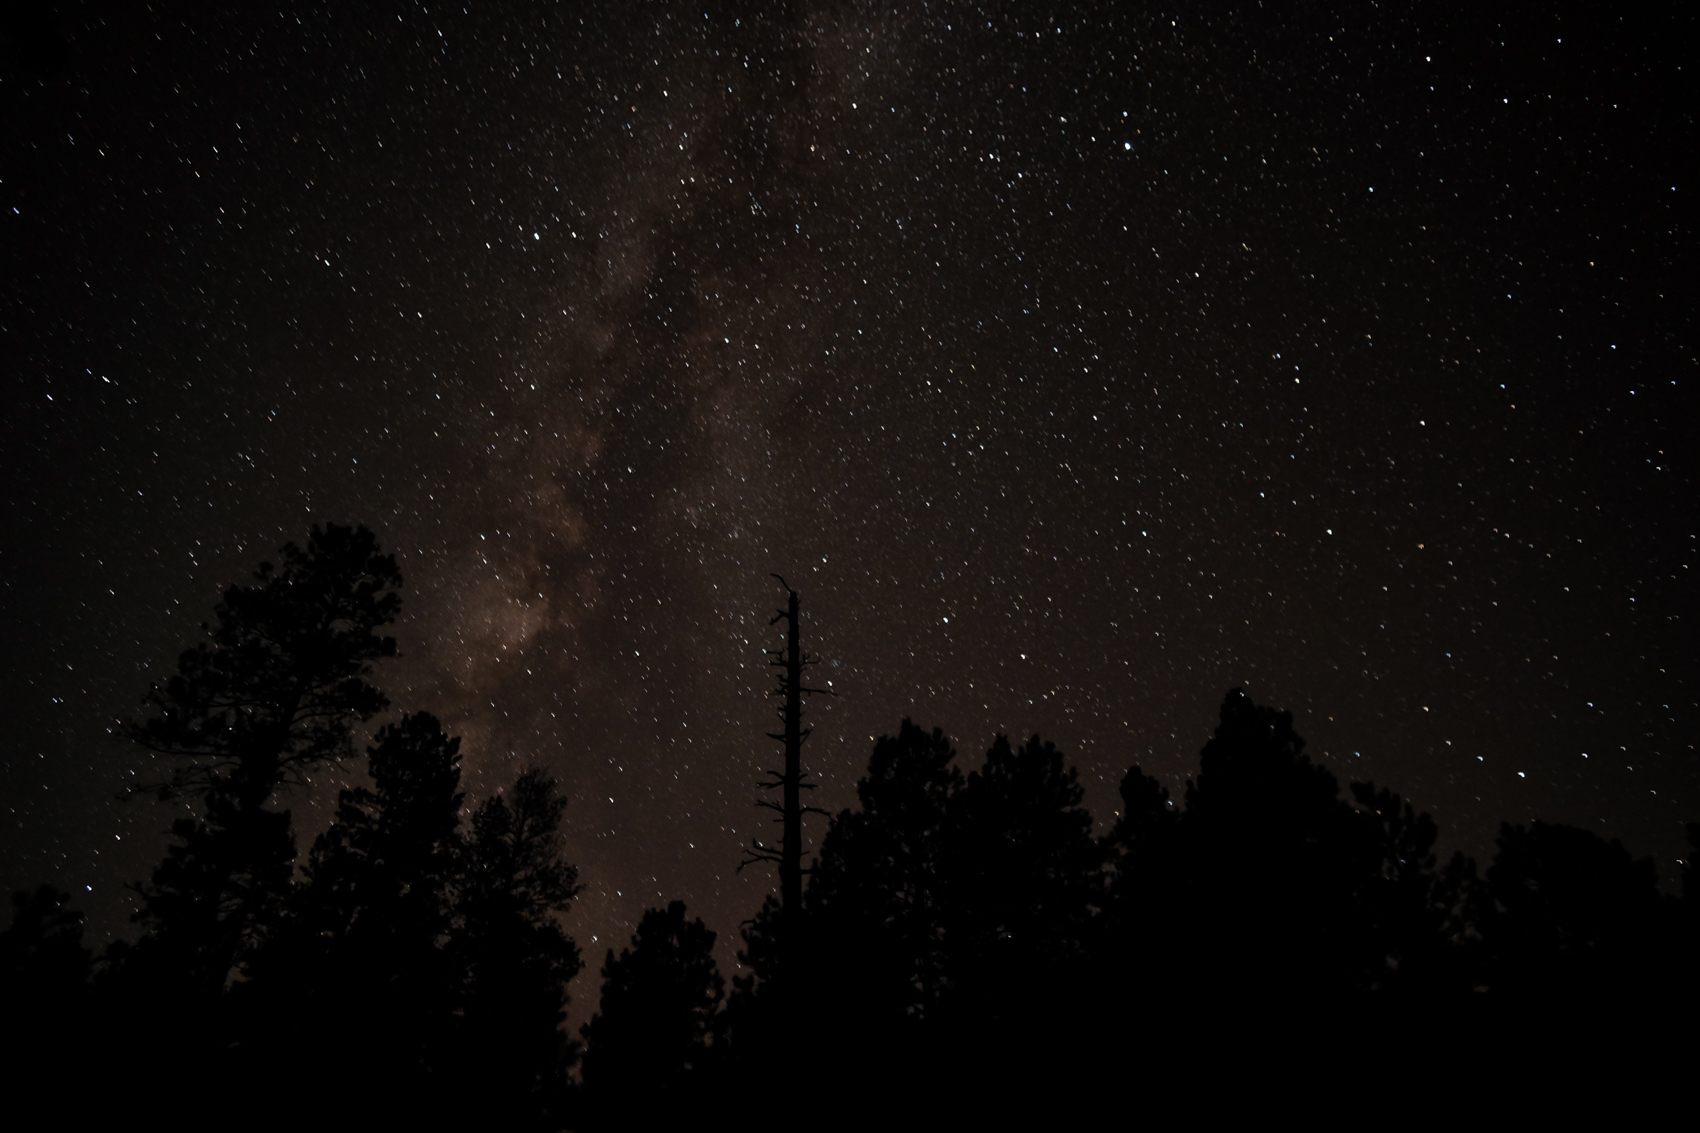 Kaibab National Forest, Arizona. September 2015.